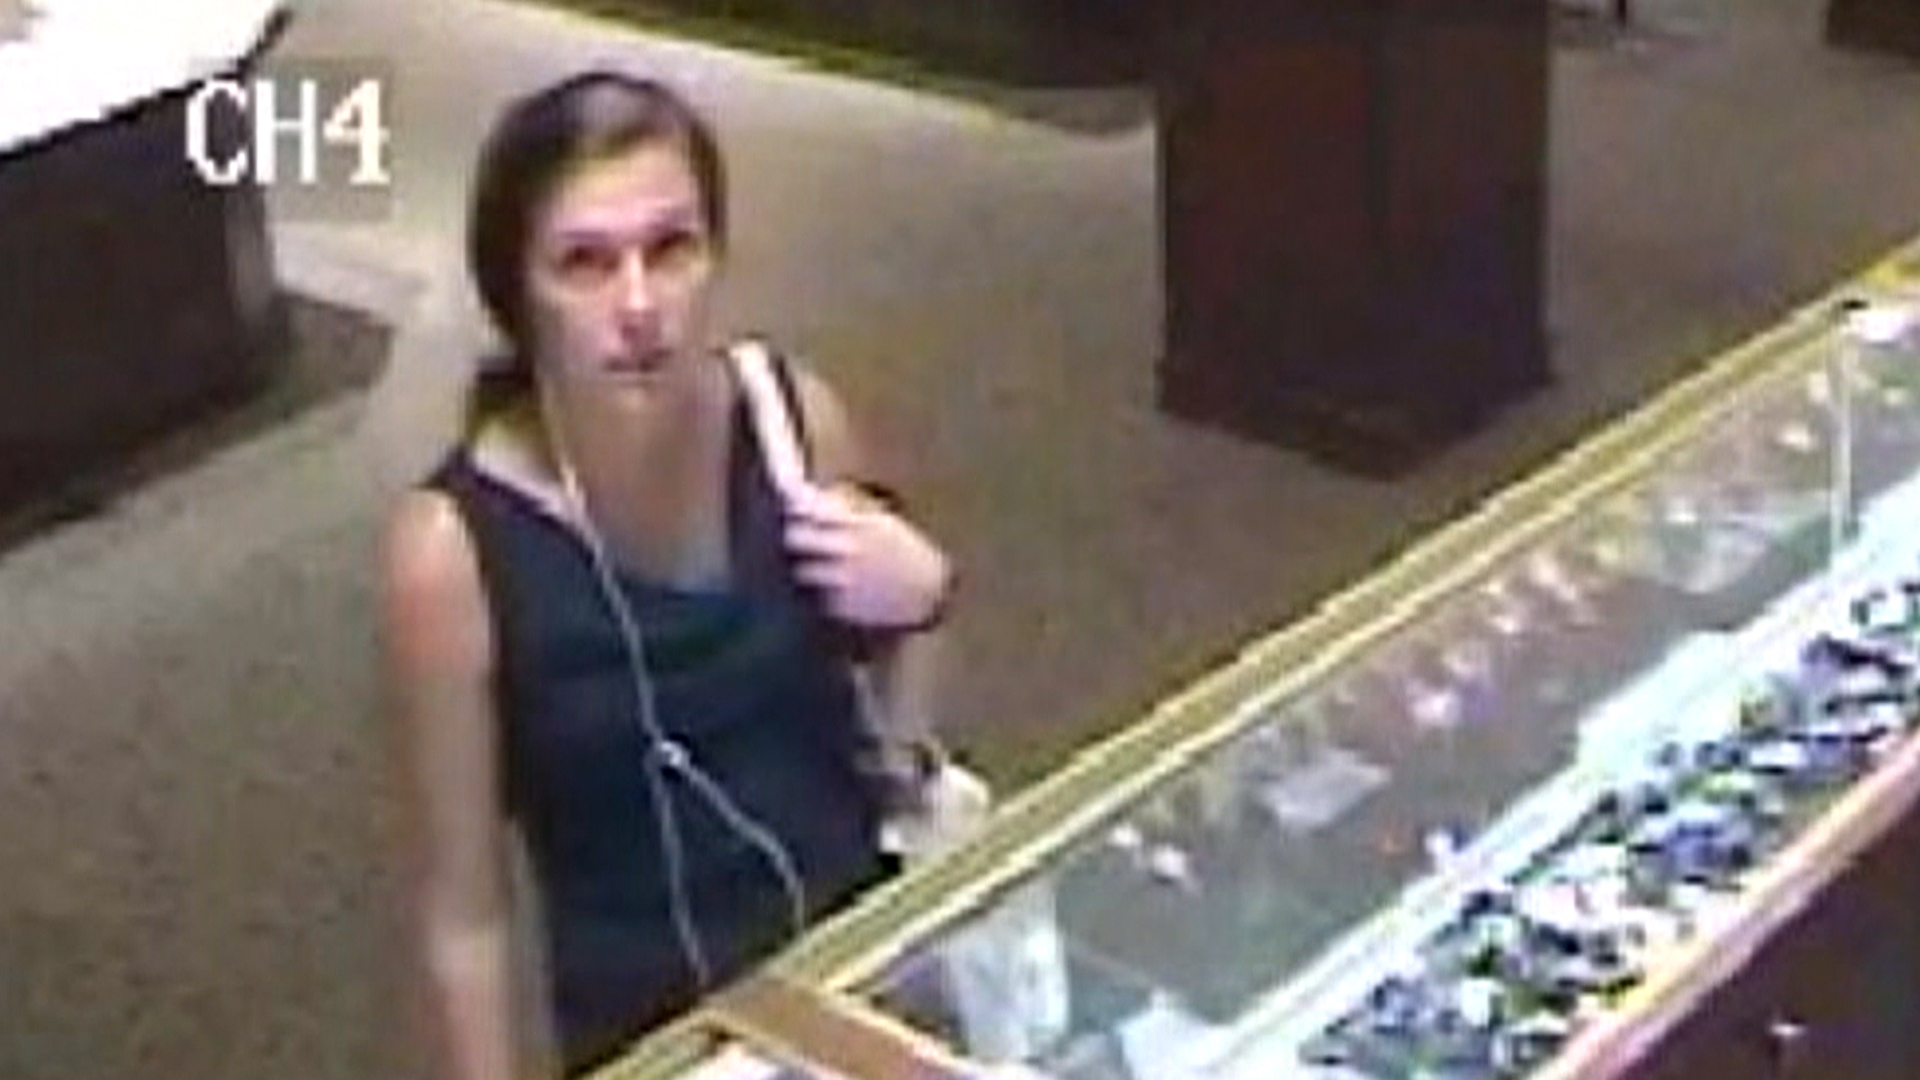 Suspect in Jewelry Store Robbery Spree Arrested in Georgia FBI Says